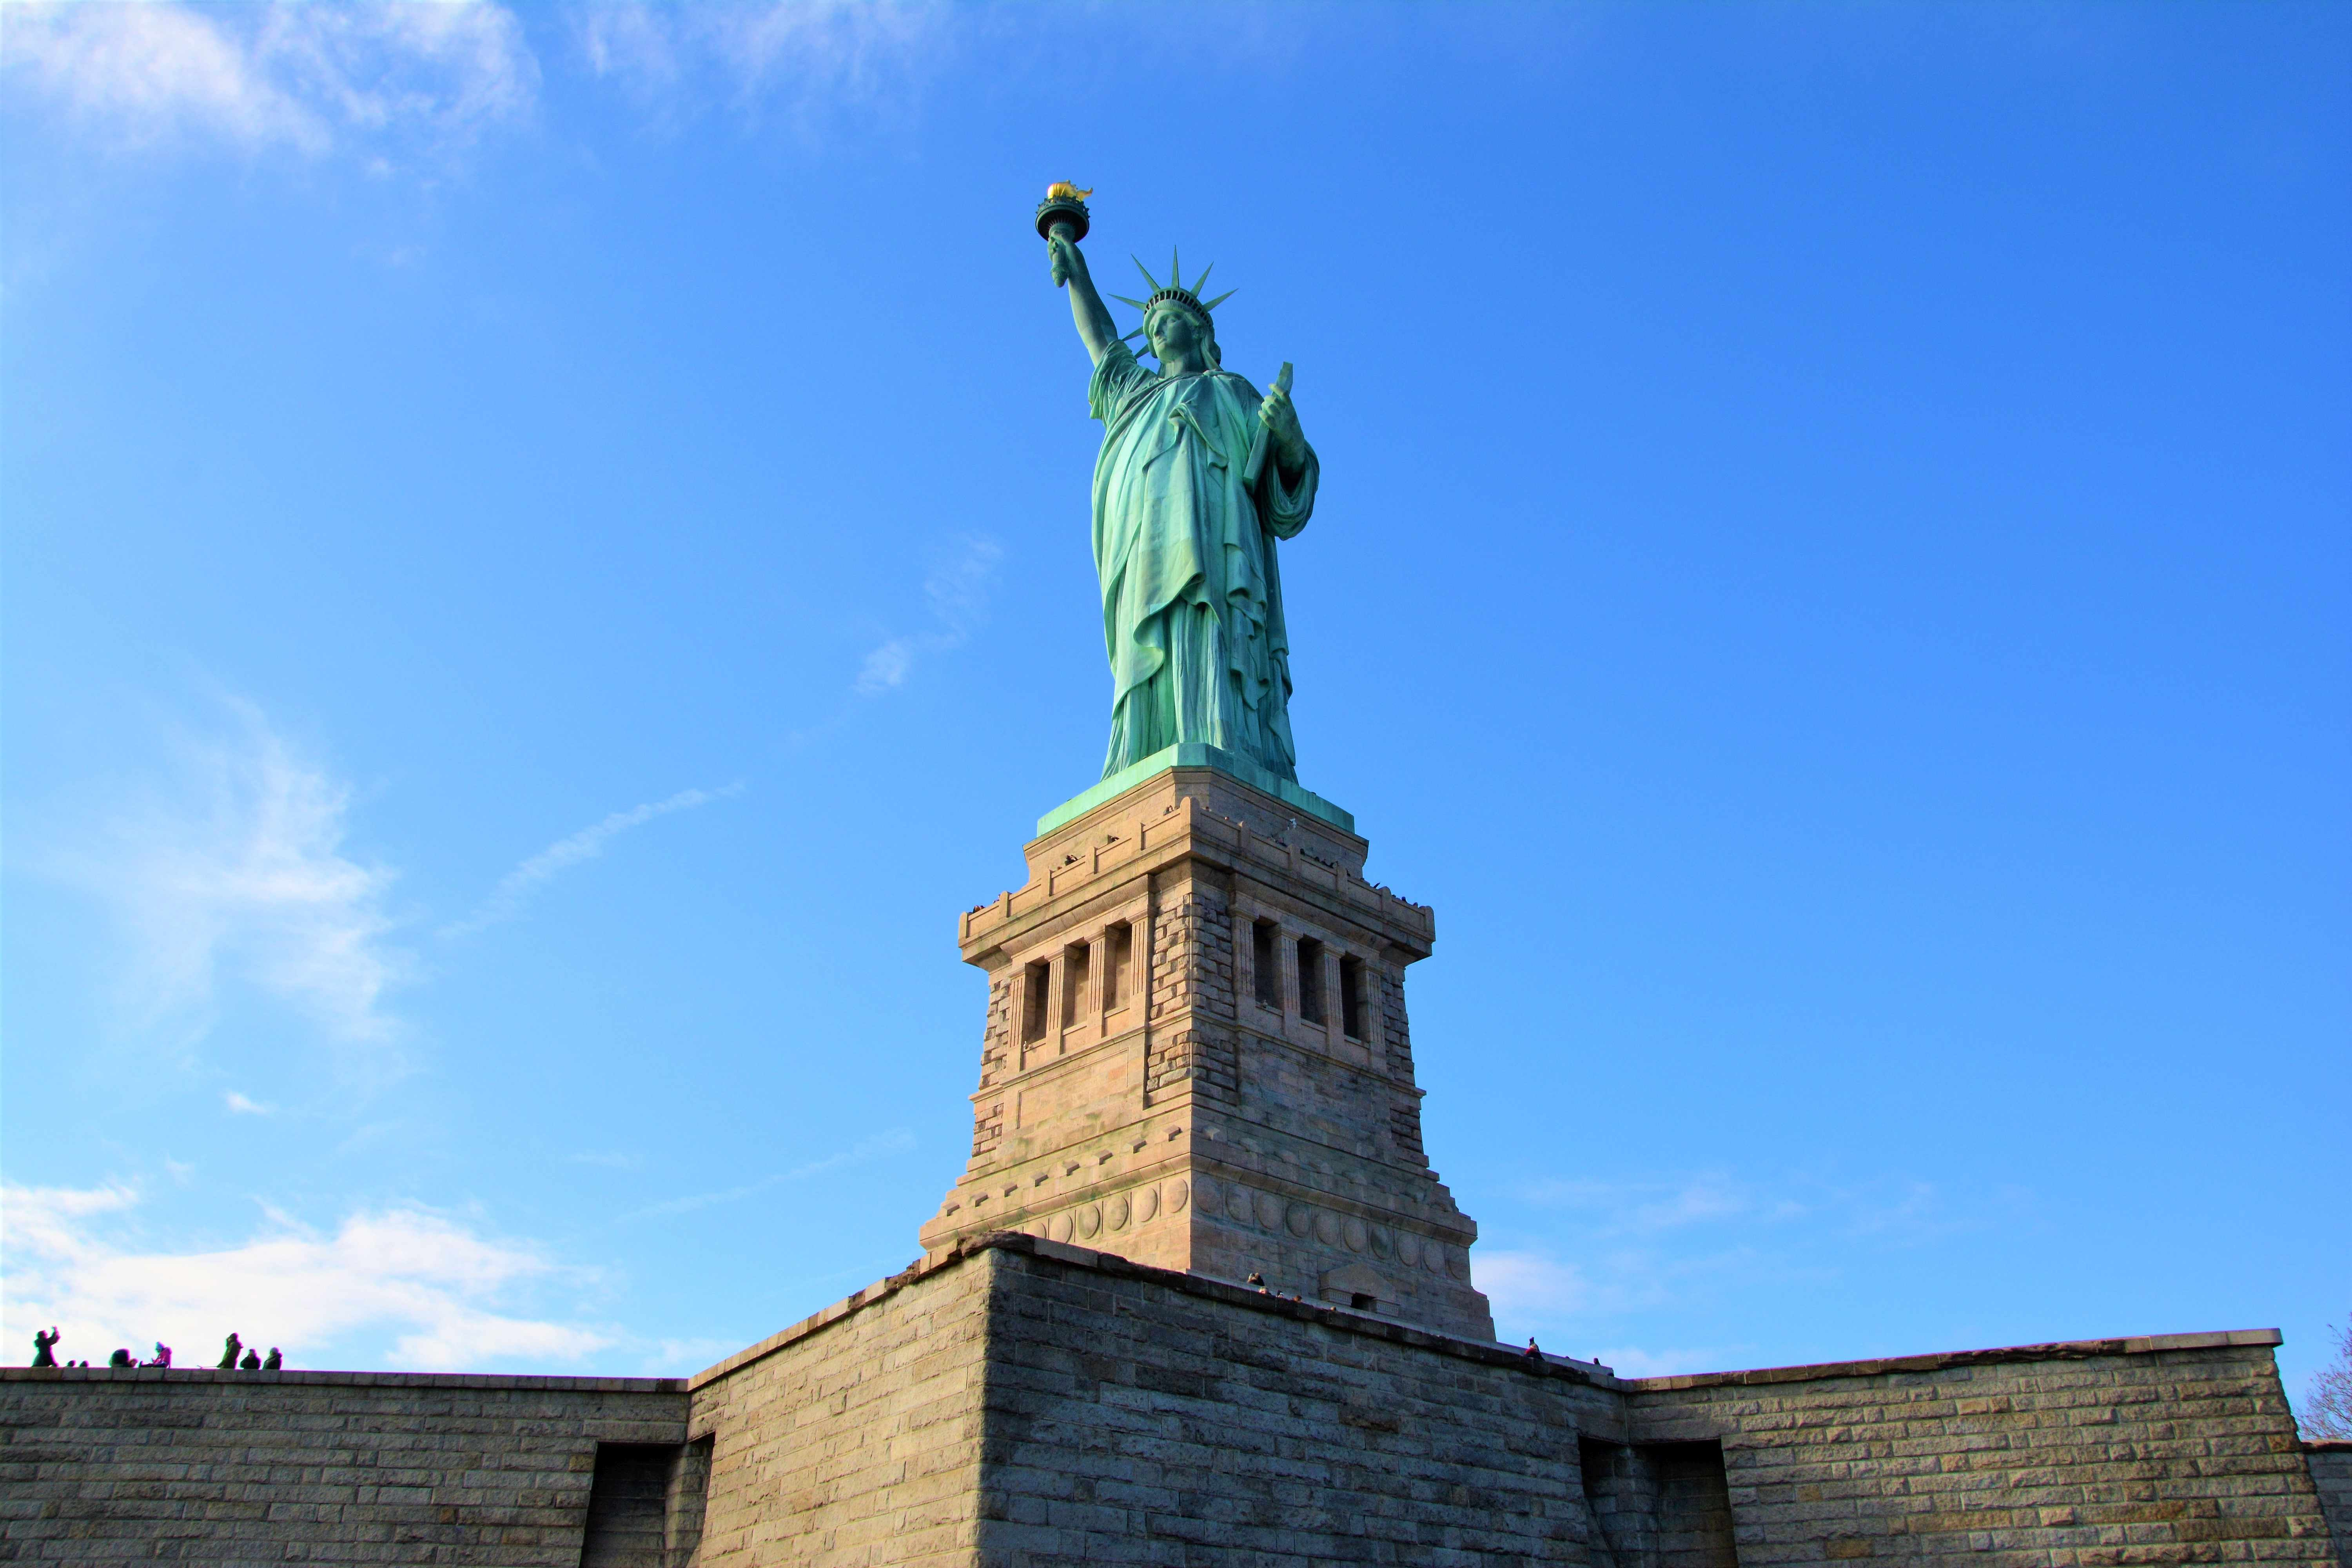 Statuia Libertatii - Plan de calatorie in New York